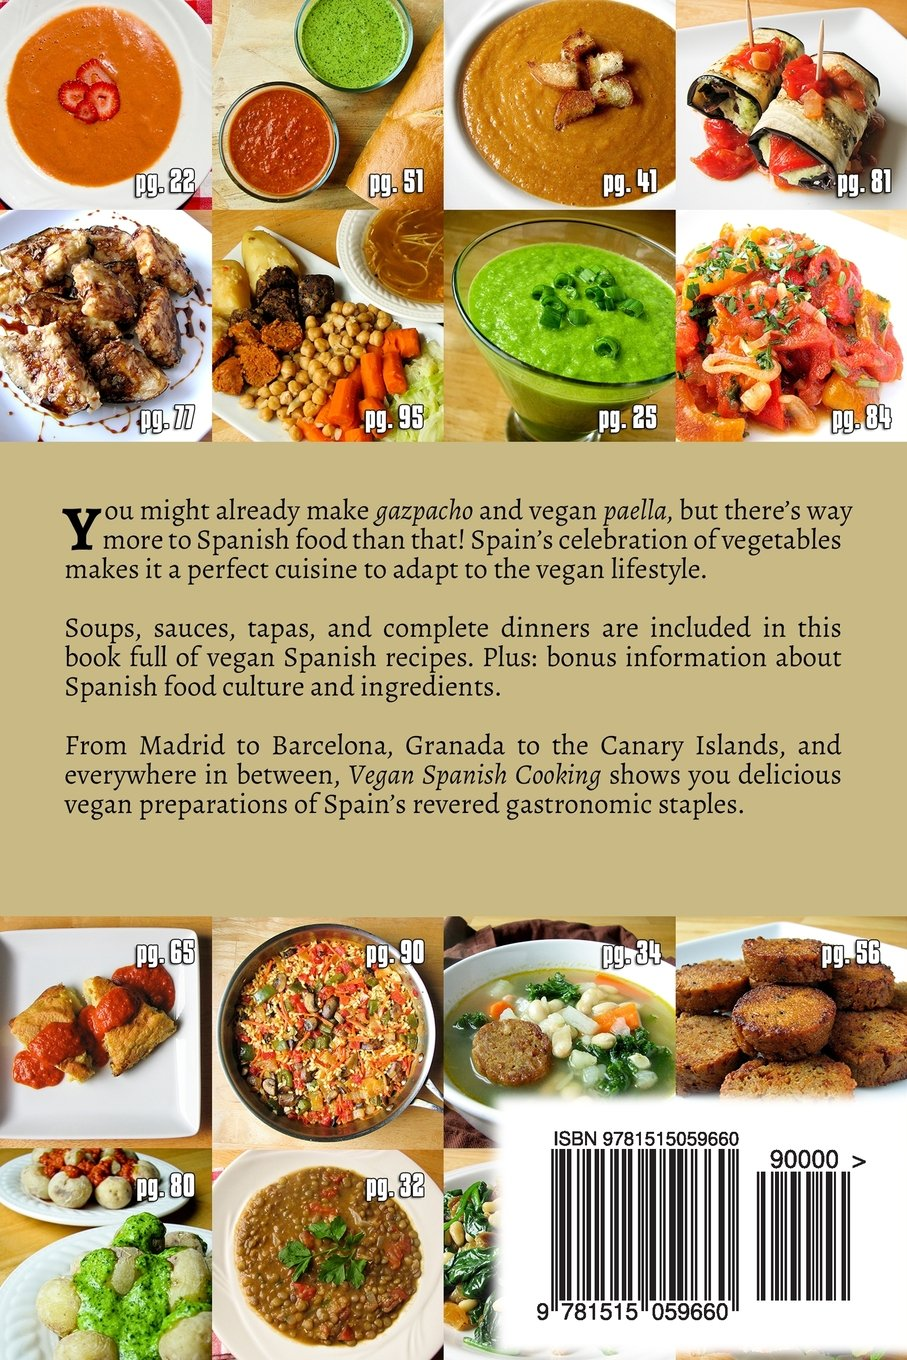 Vegan spanish cooking amazon andy luttrell 9781515059660 vegan spanish cooking amazon andy luttrell 9781515059660 books forumfinder Images